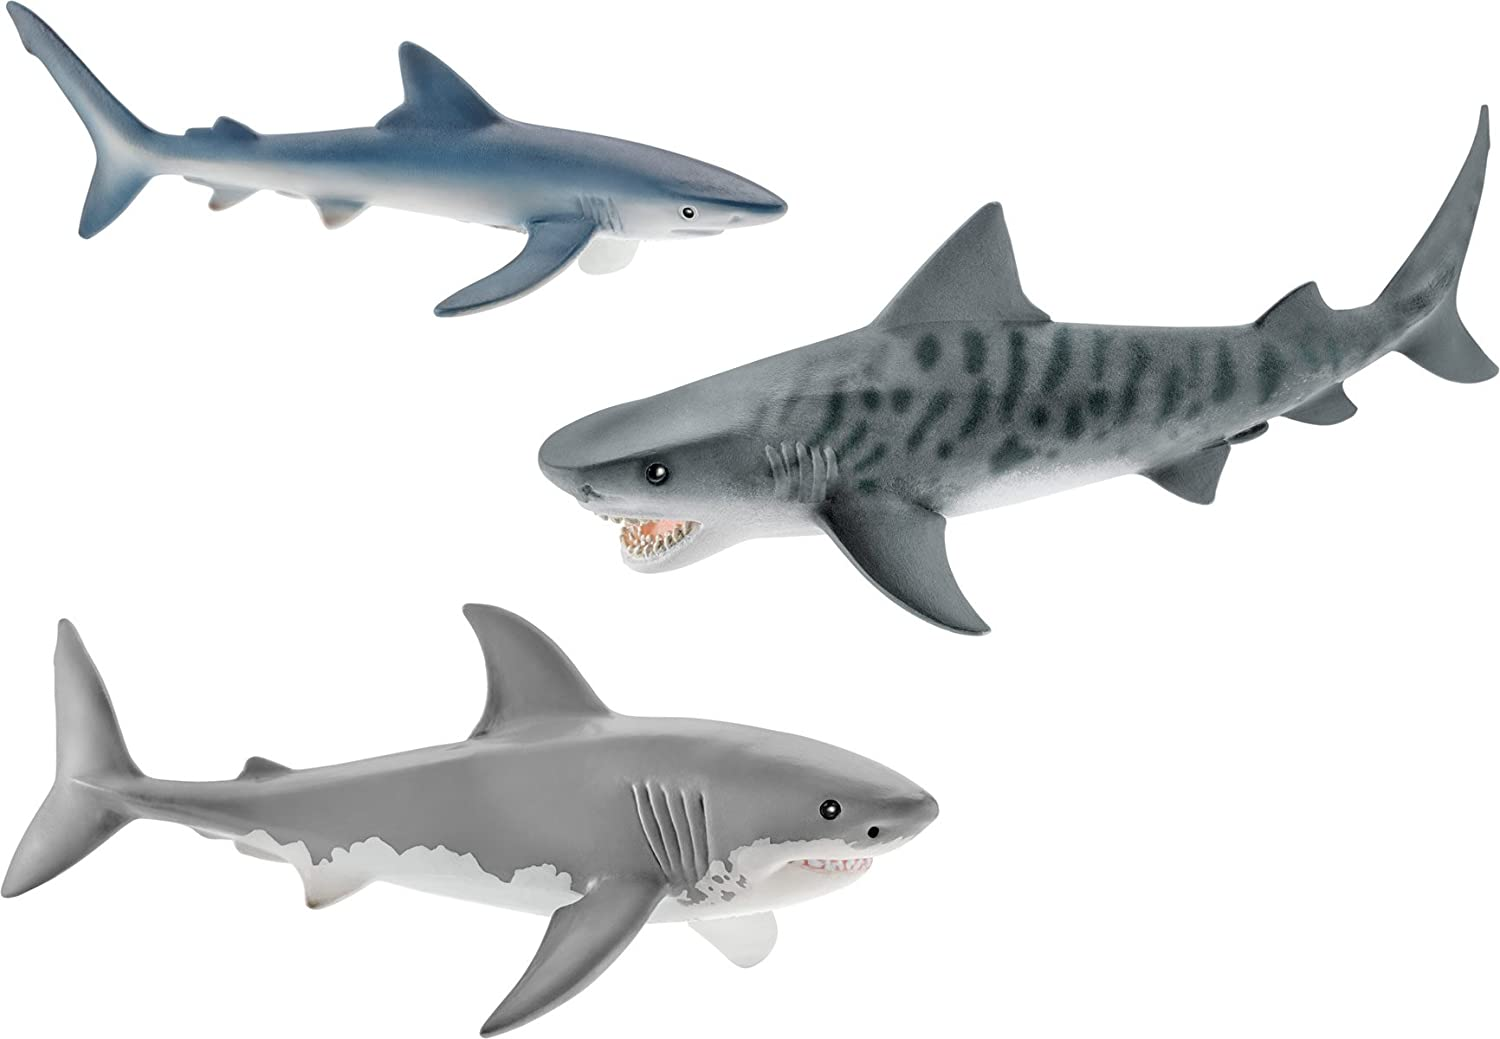 Schleich Shark Set - Tiger Shark, Great White Shark, and Blue Shark